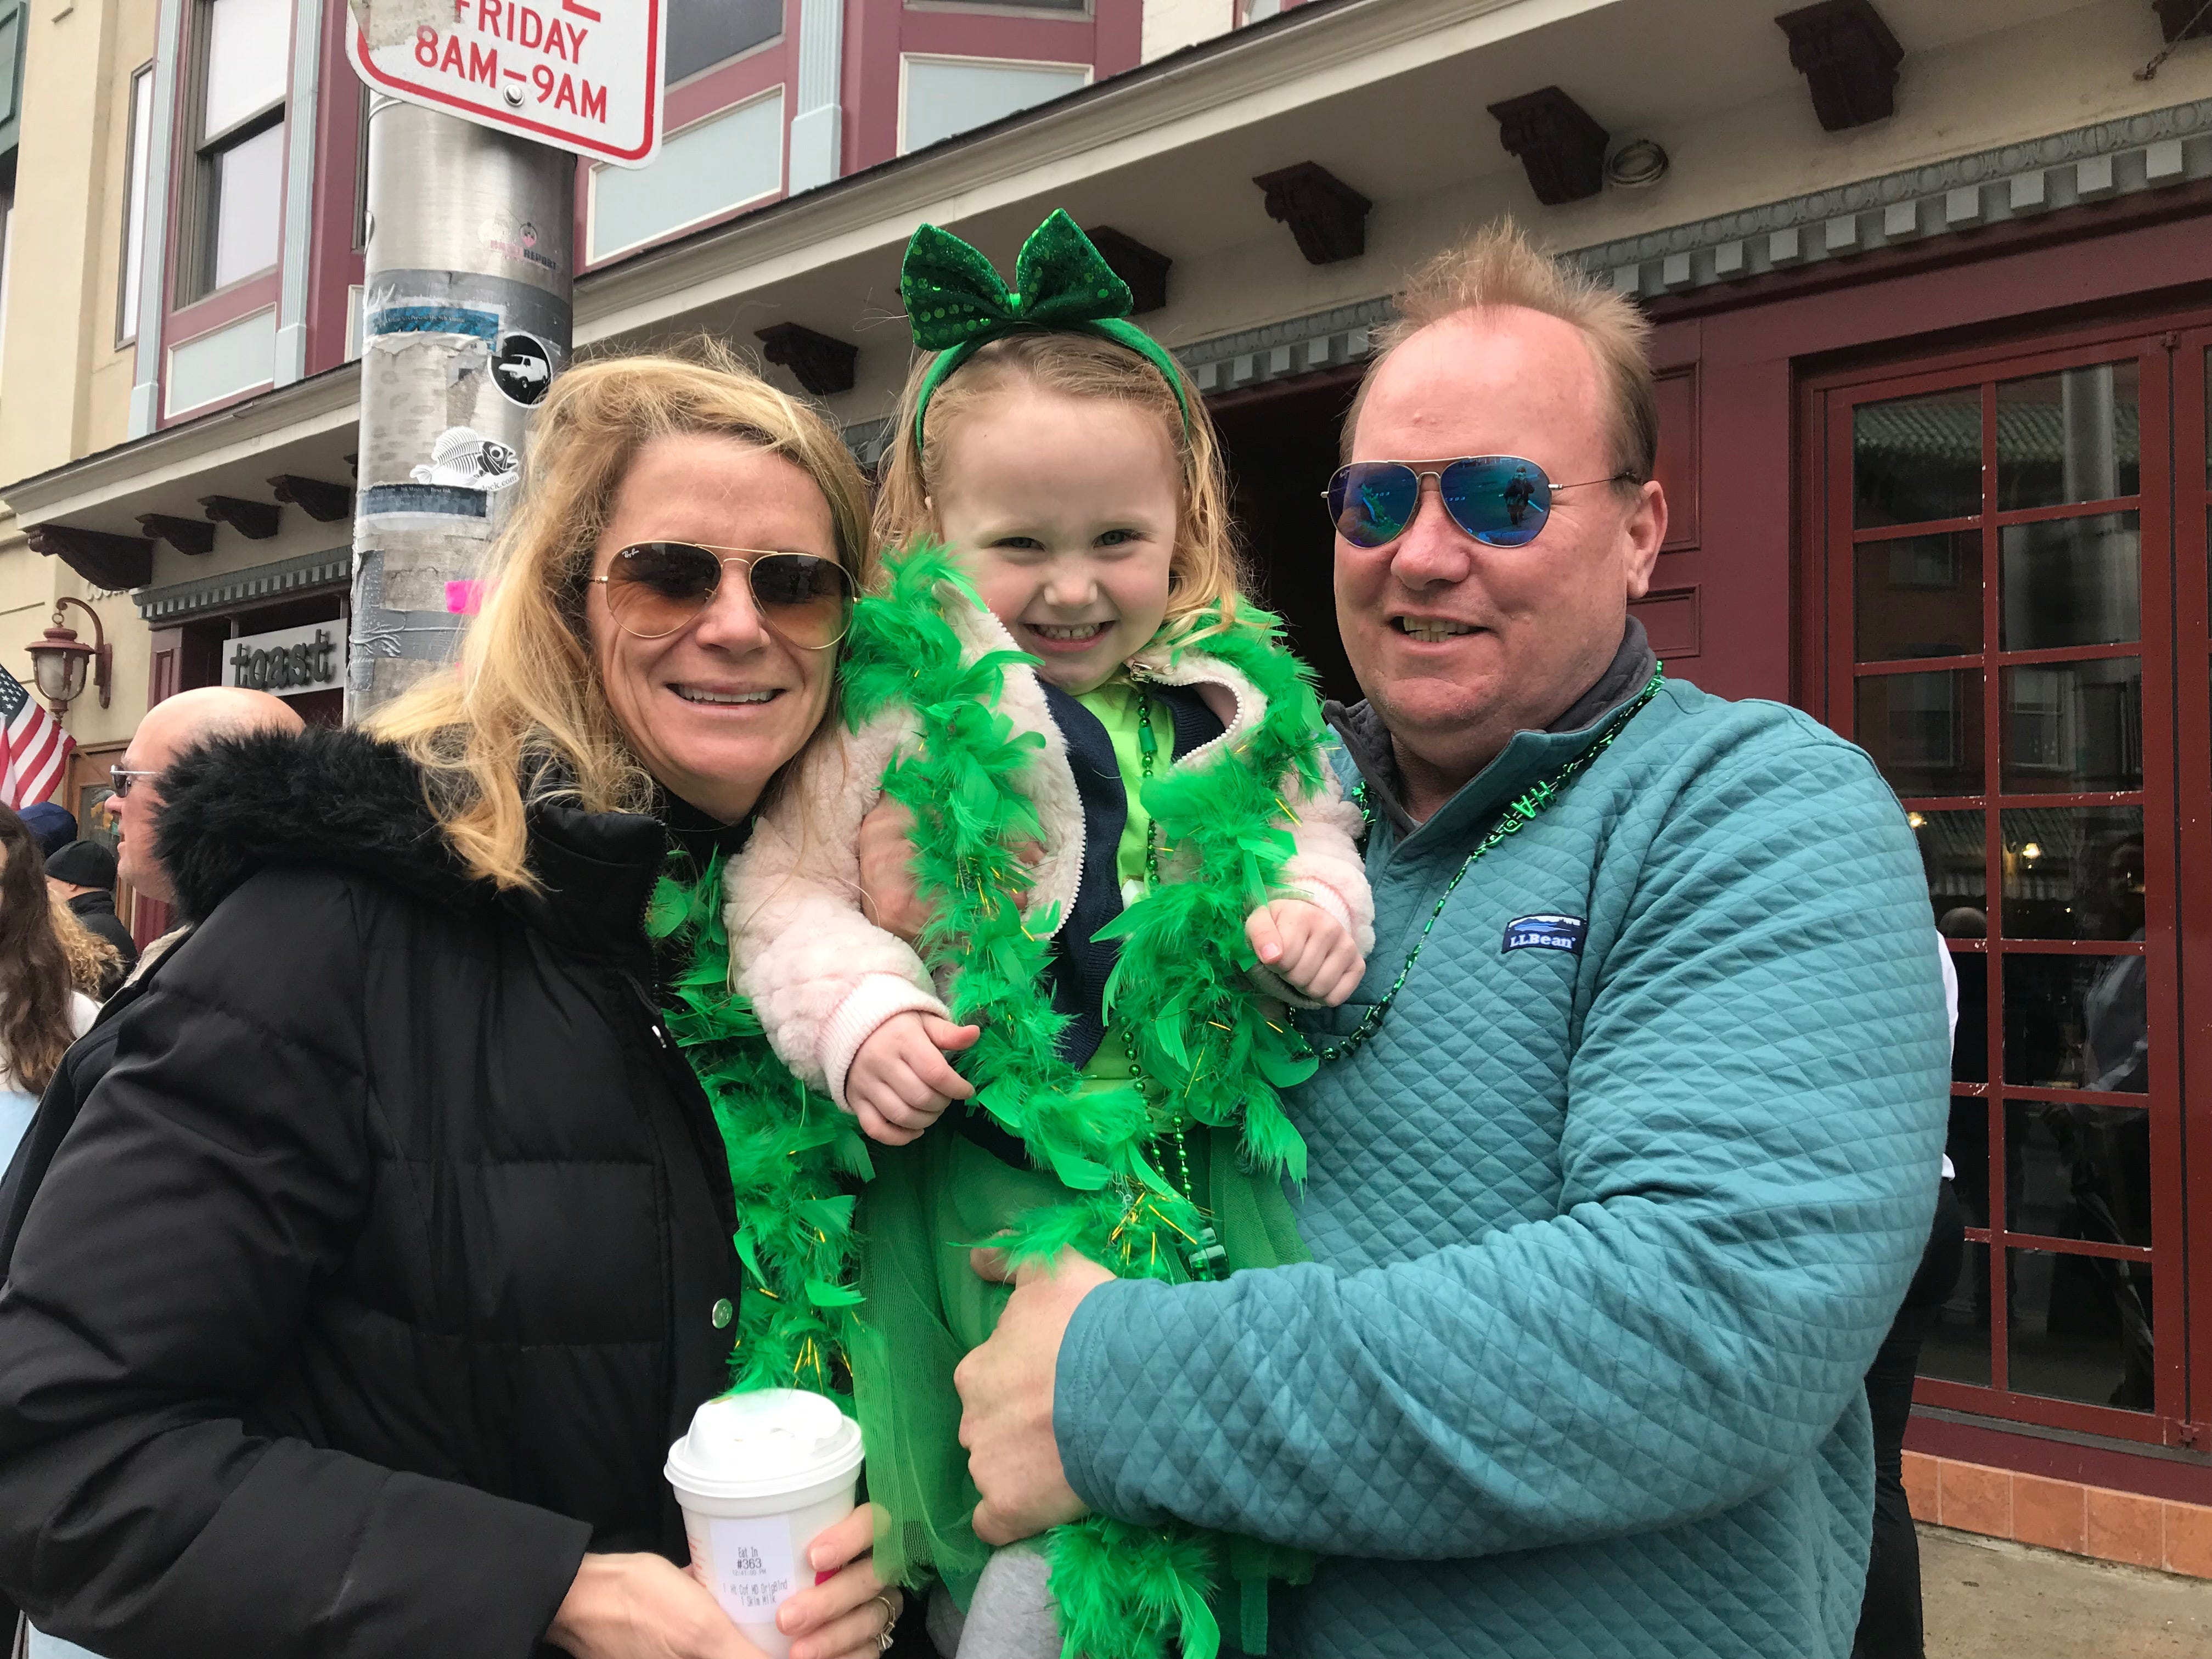 Tara and Tim Chenoweth of Tinton Falls, along with 3-year-old Harper, attend the Asbury Park St. Patrick's Day Parade on March 10, 2019.